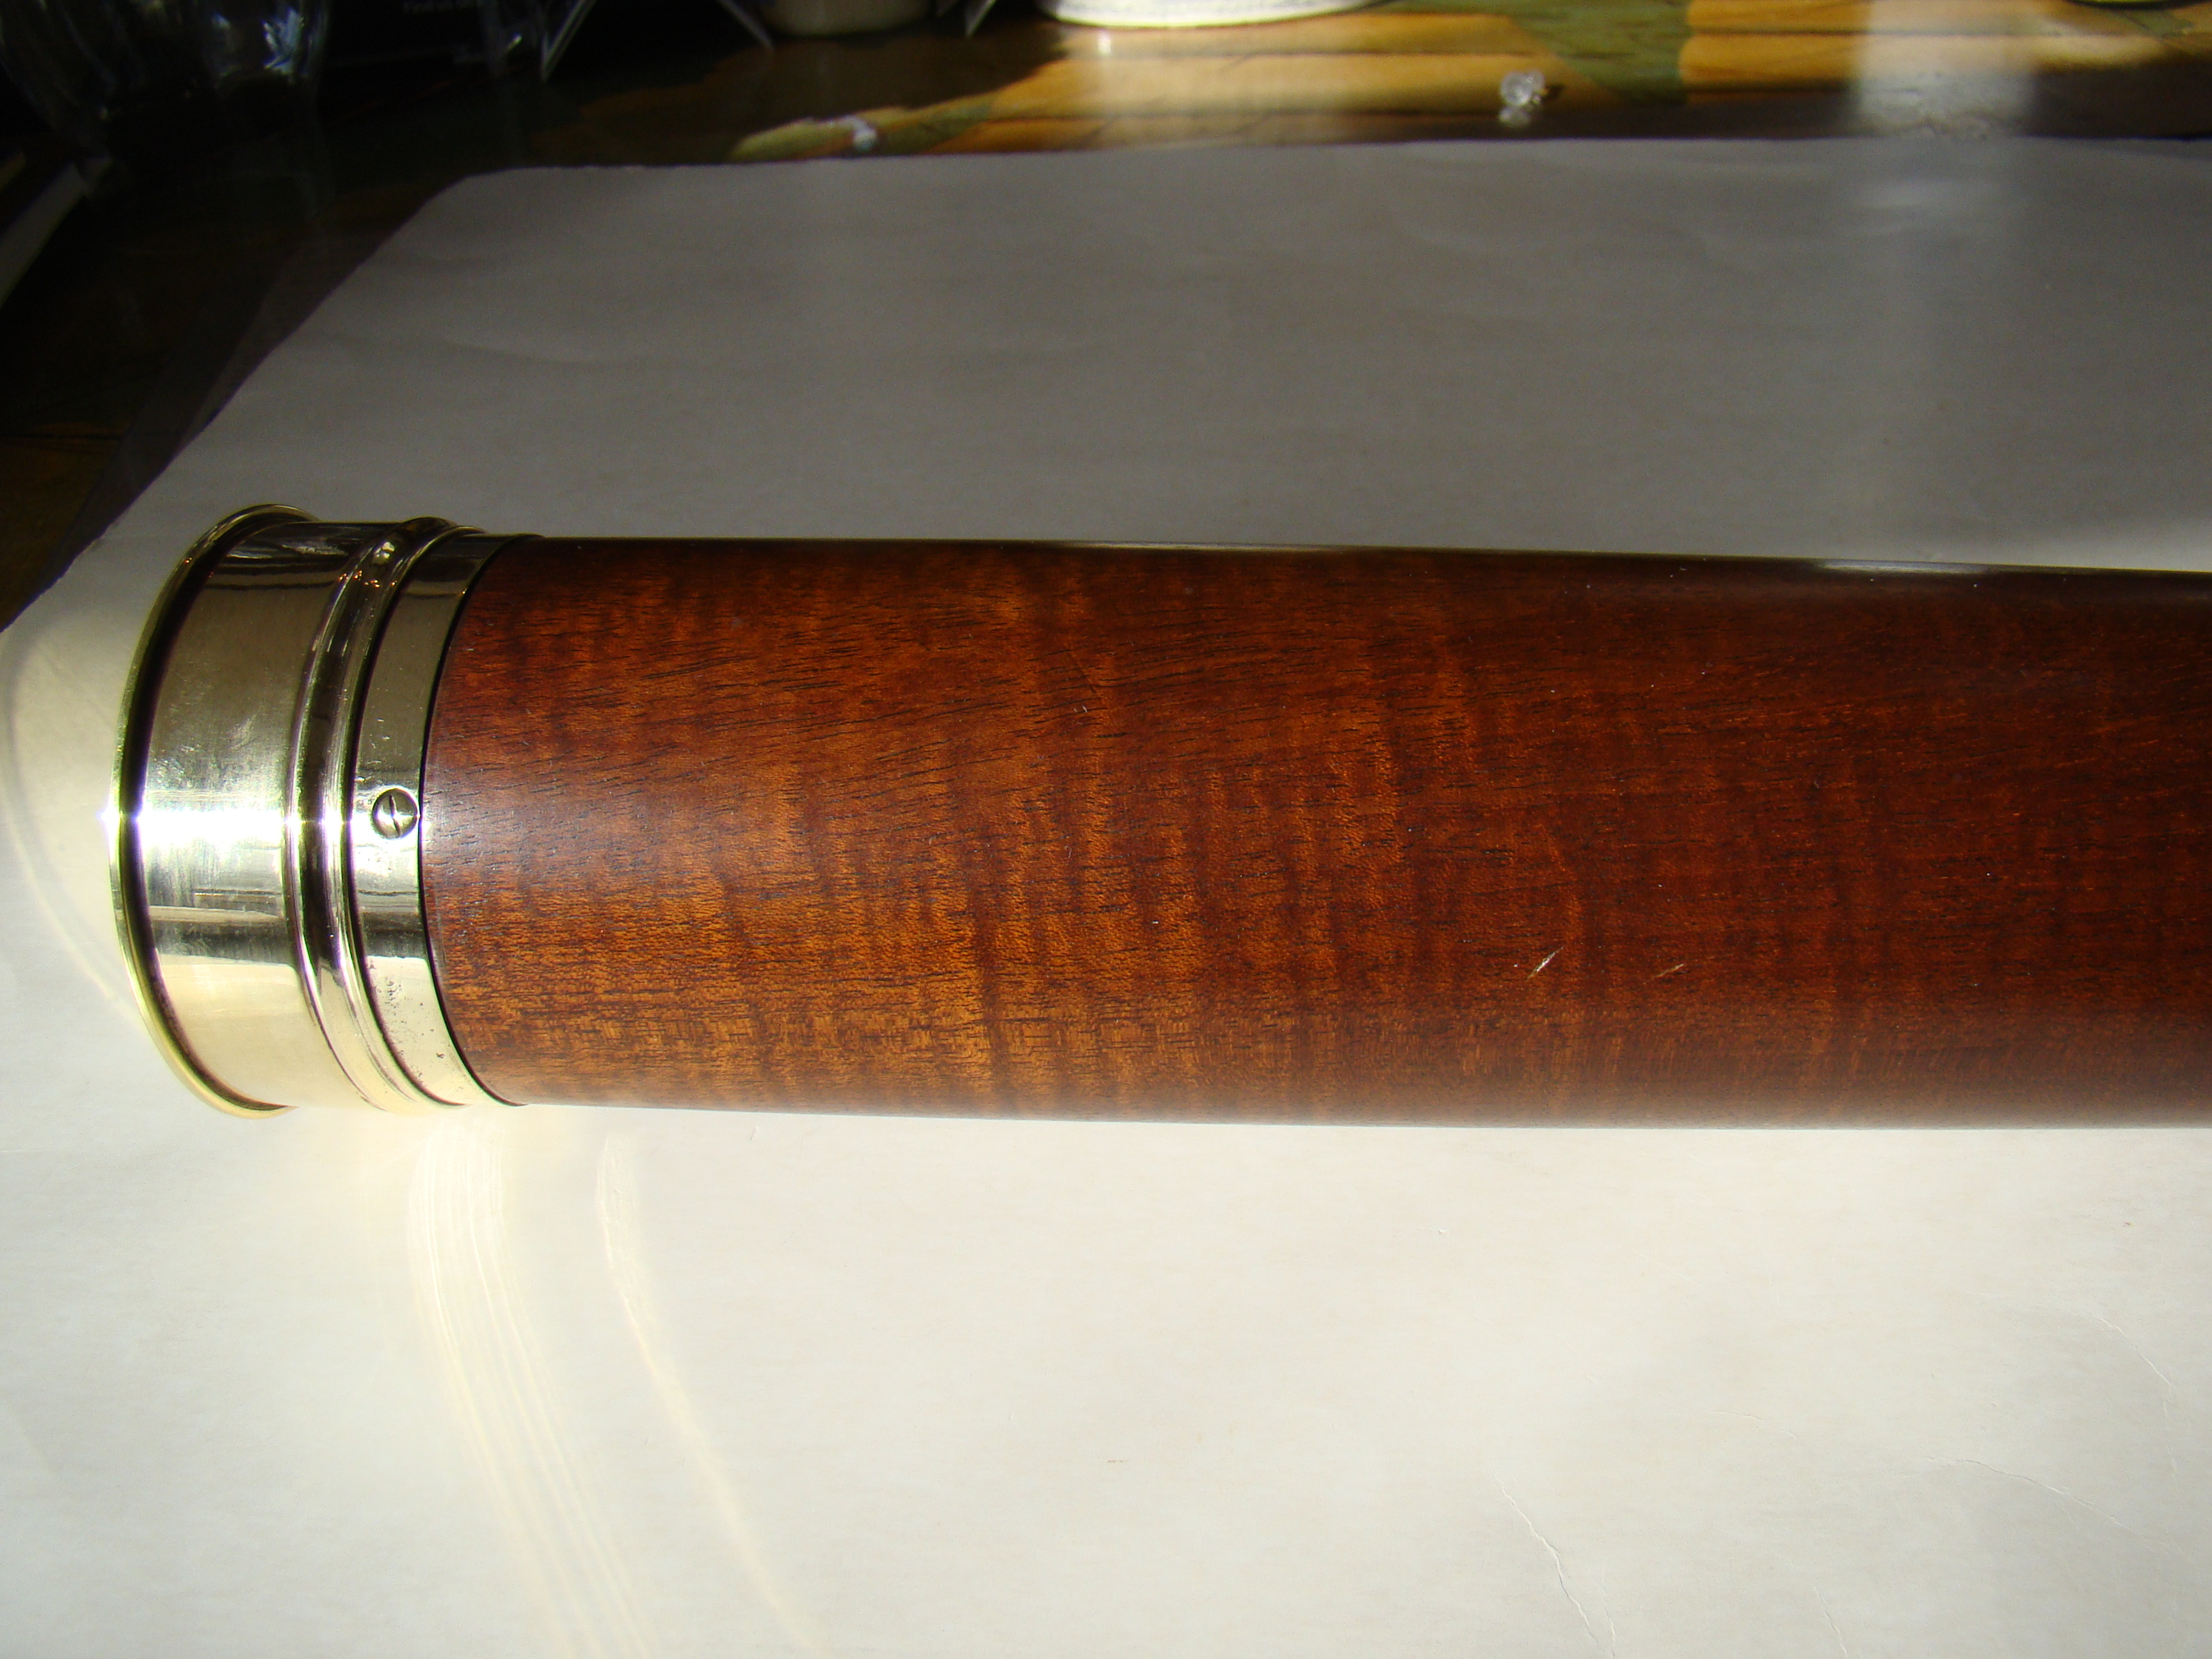 click to view larger image of A magnificent late 18th century table mount telescope by Dolland of London